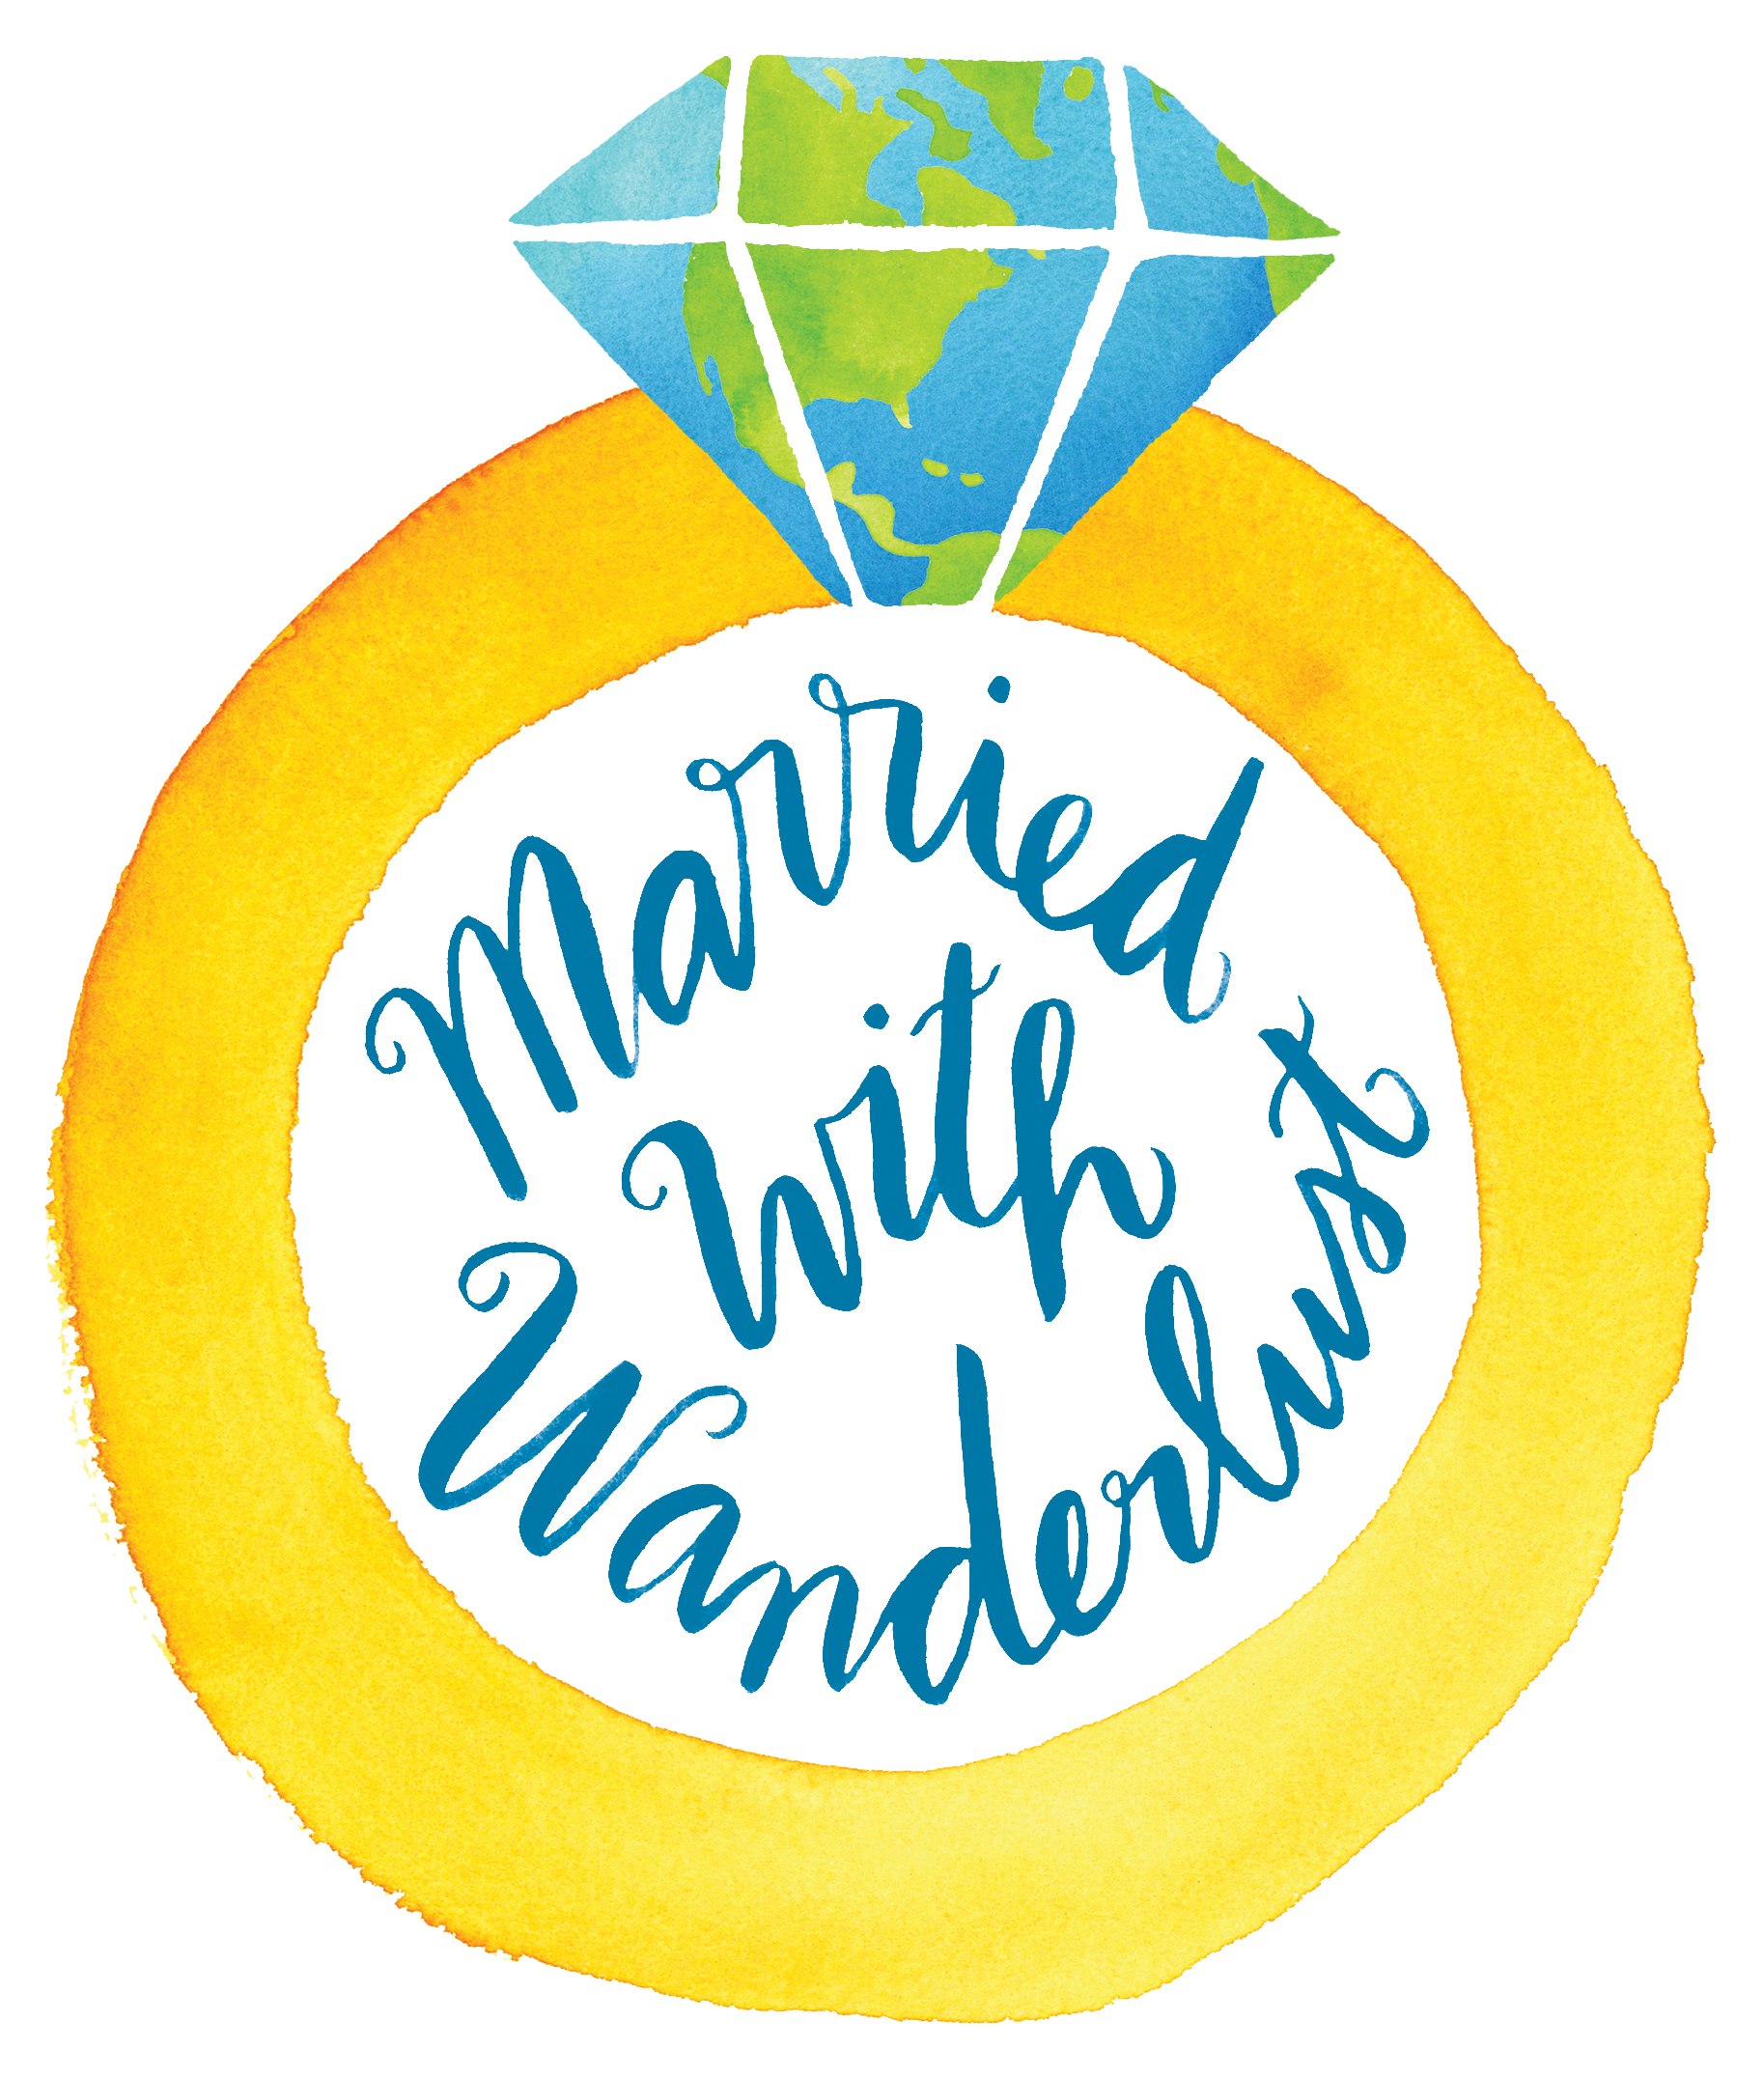 Married with Wanderlust